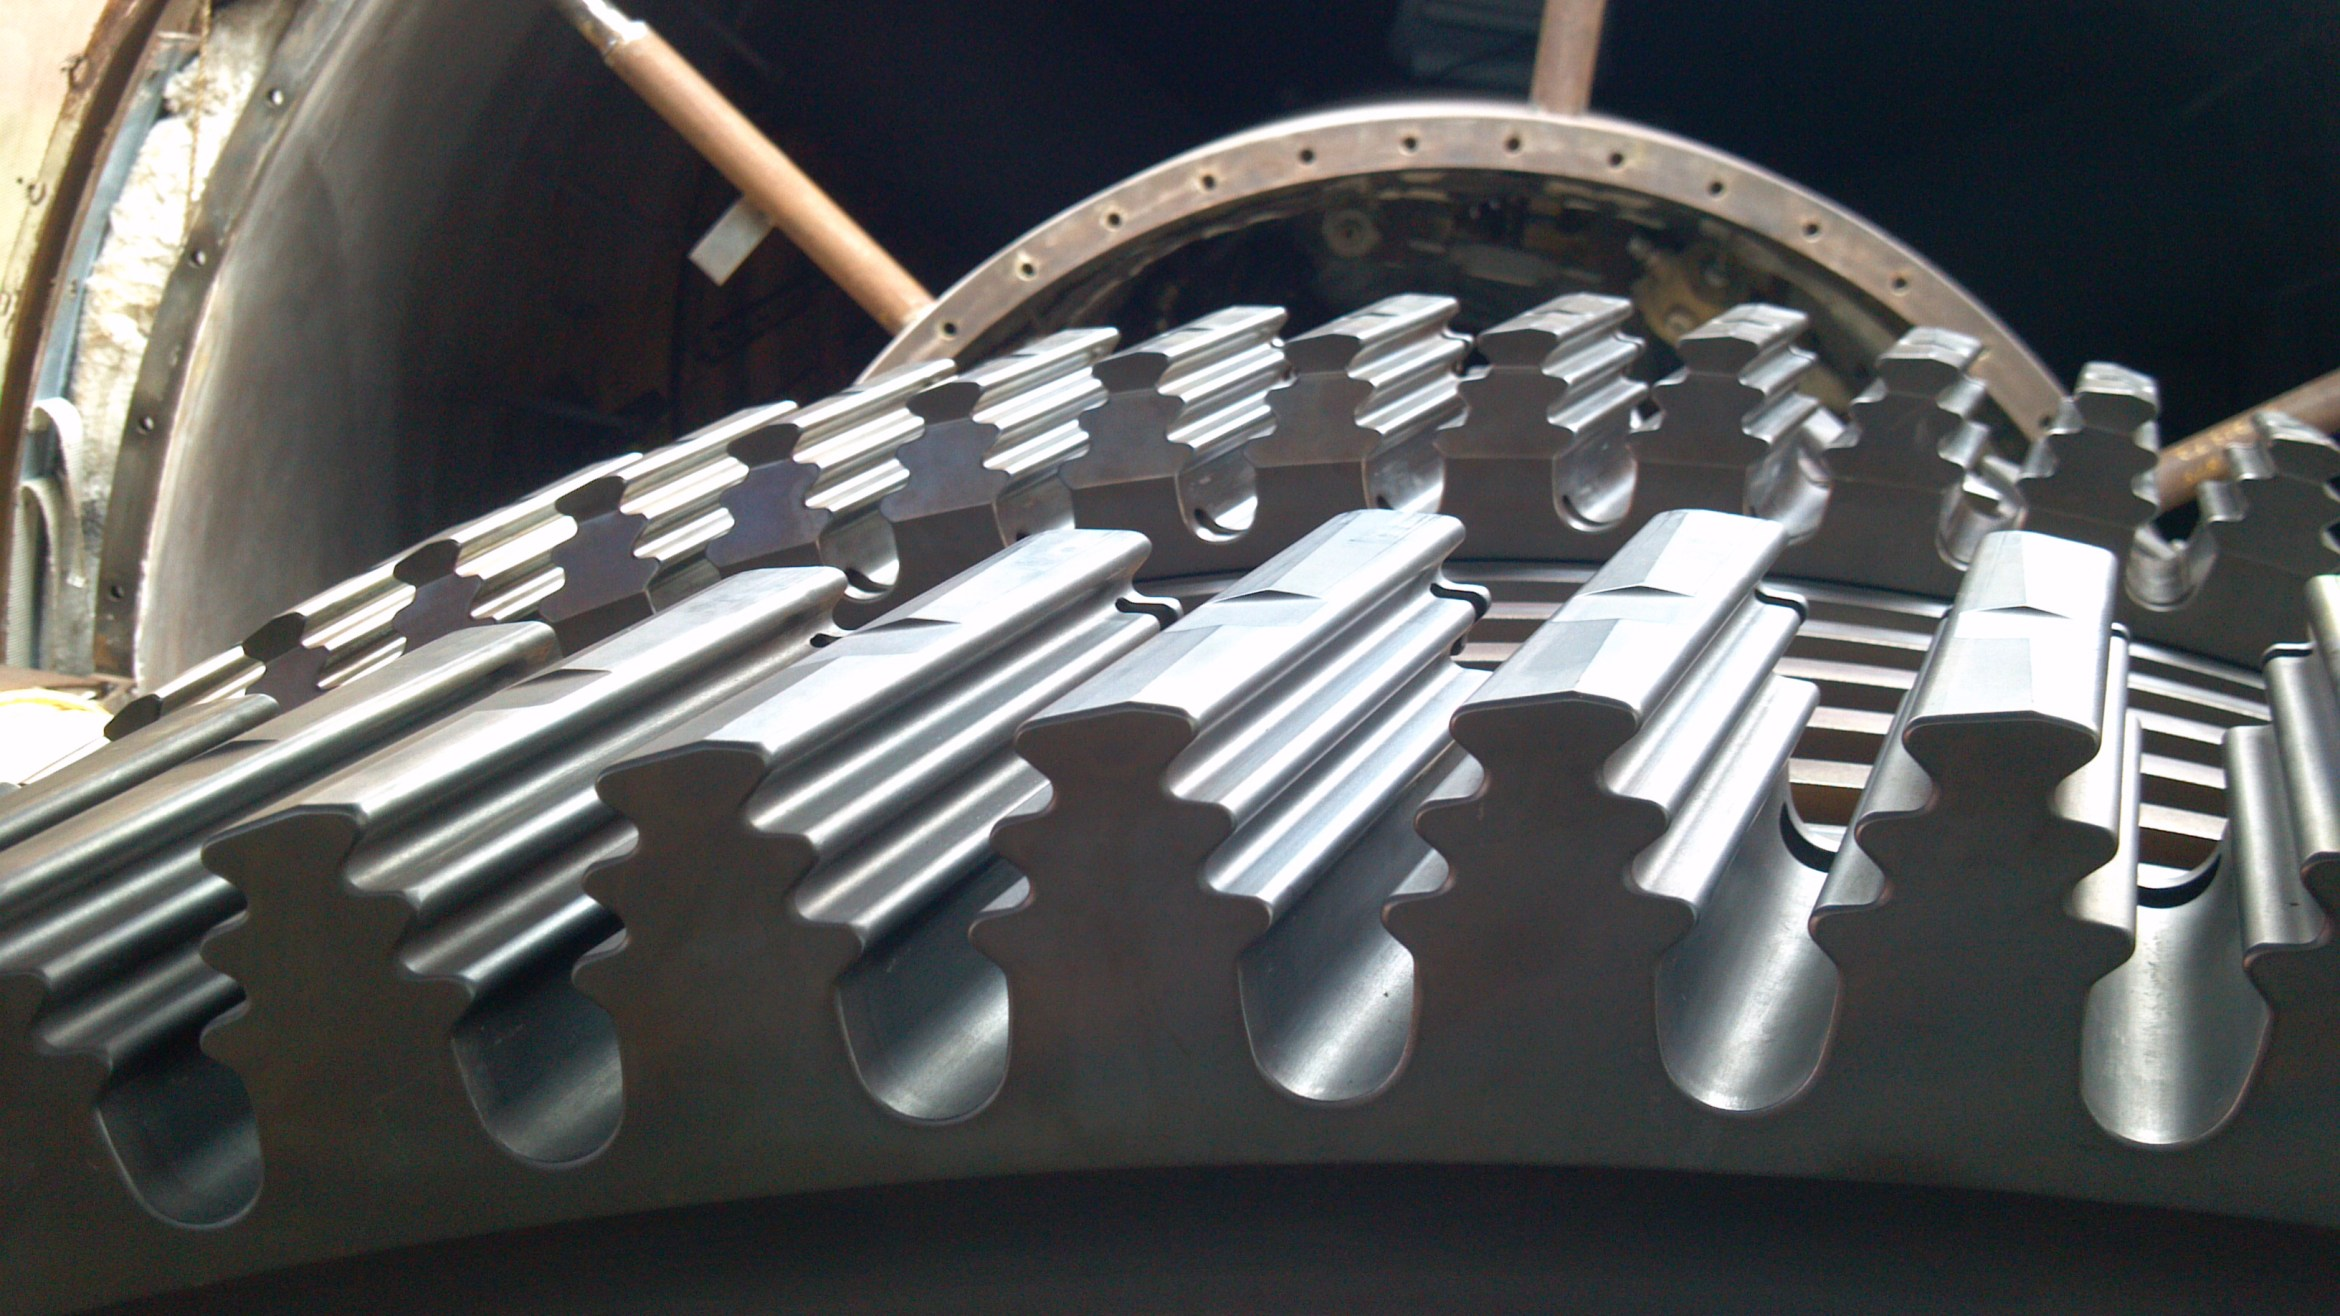 1st 2nd and 3rd Stage Turbine Wheel After Co2 Blasting